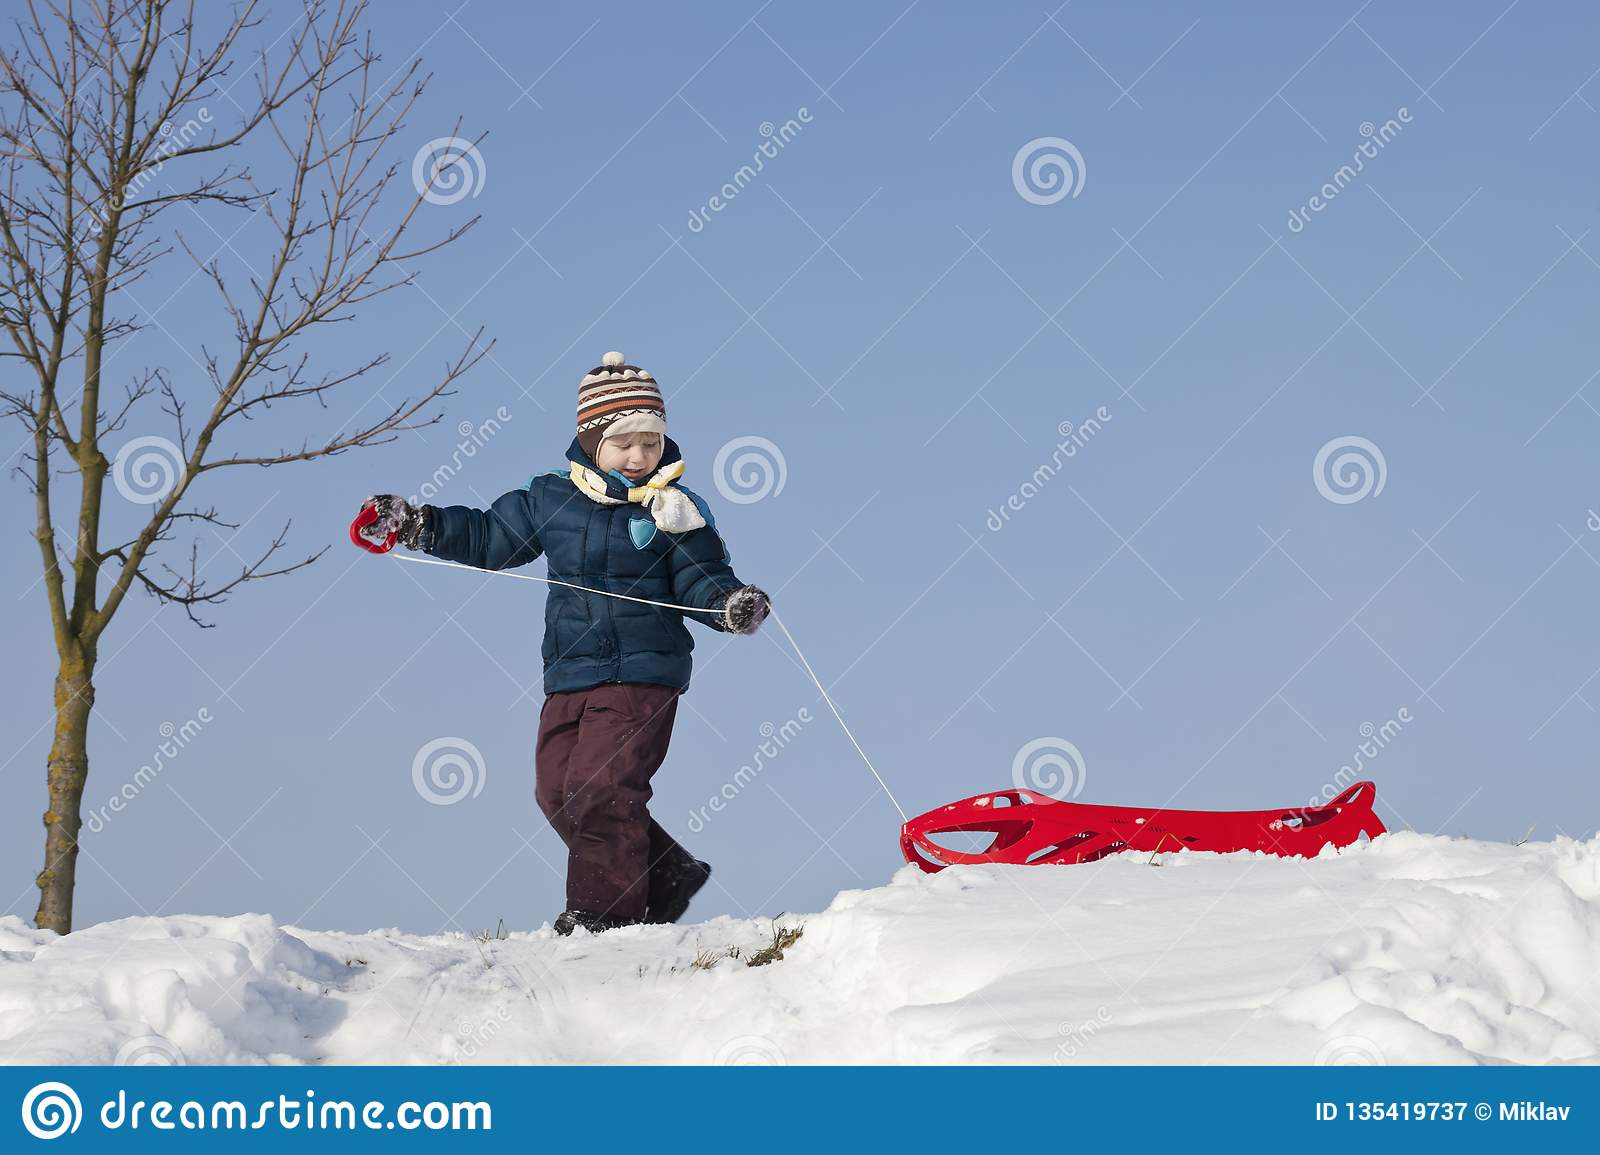 Boy with red plastic sledge on a snowy hill